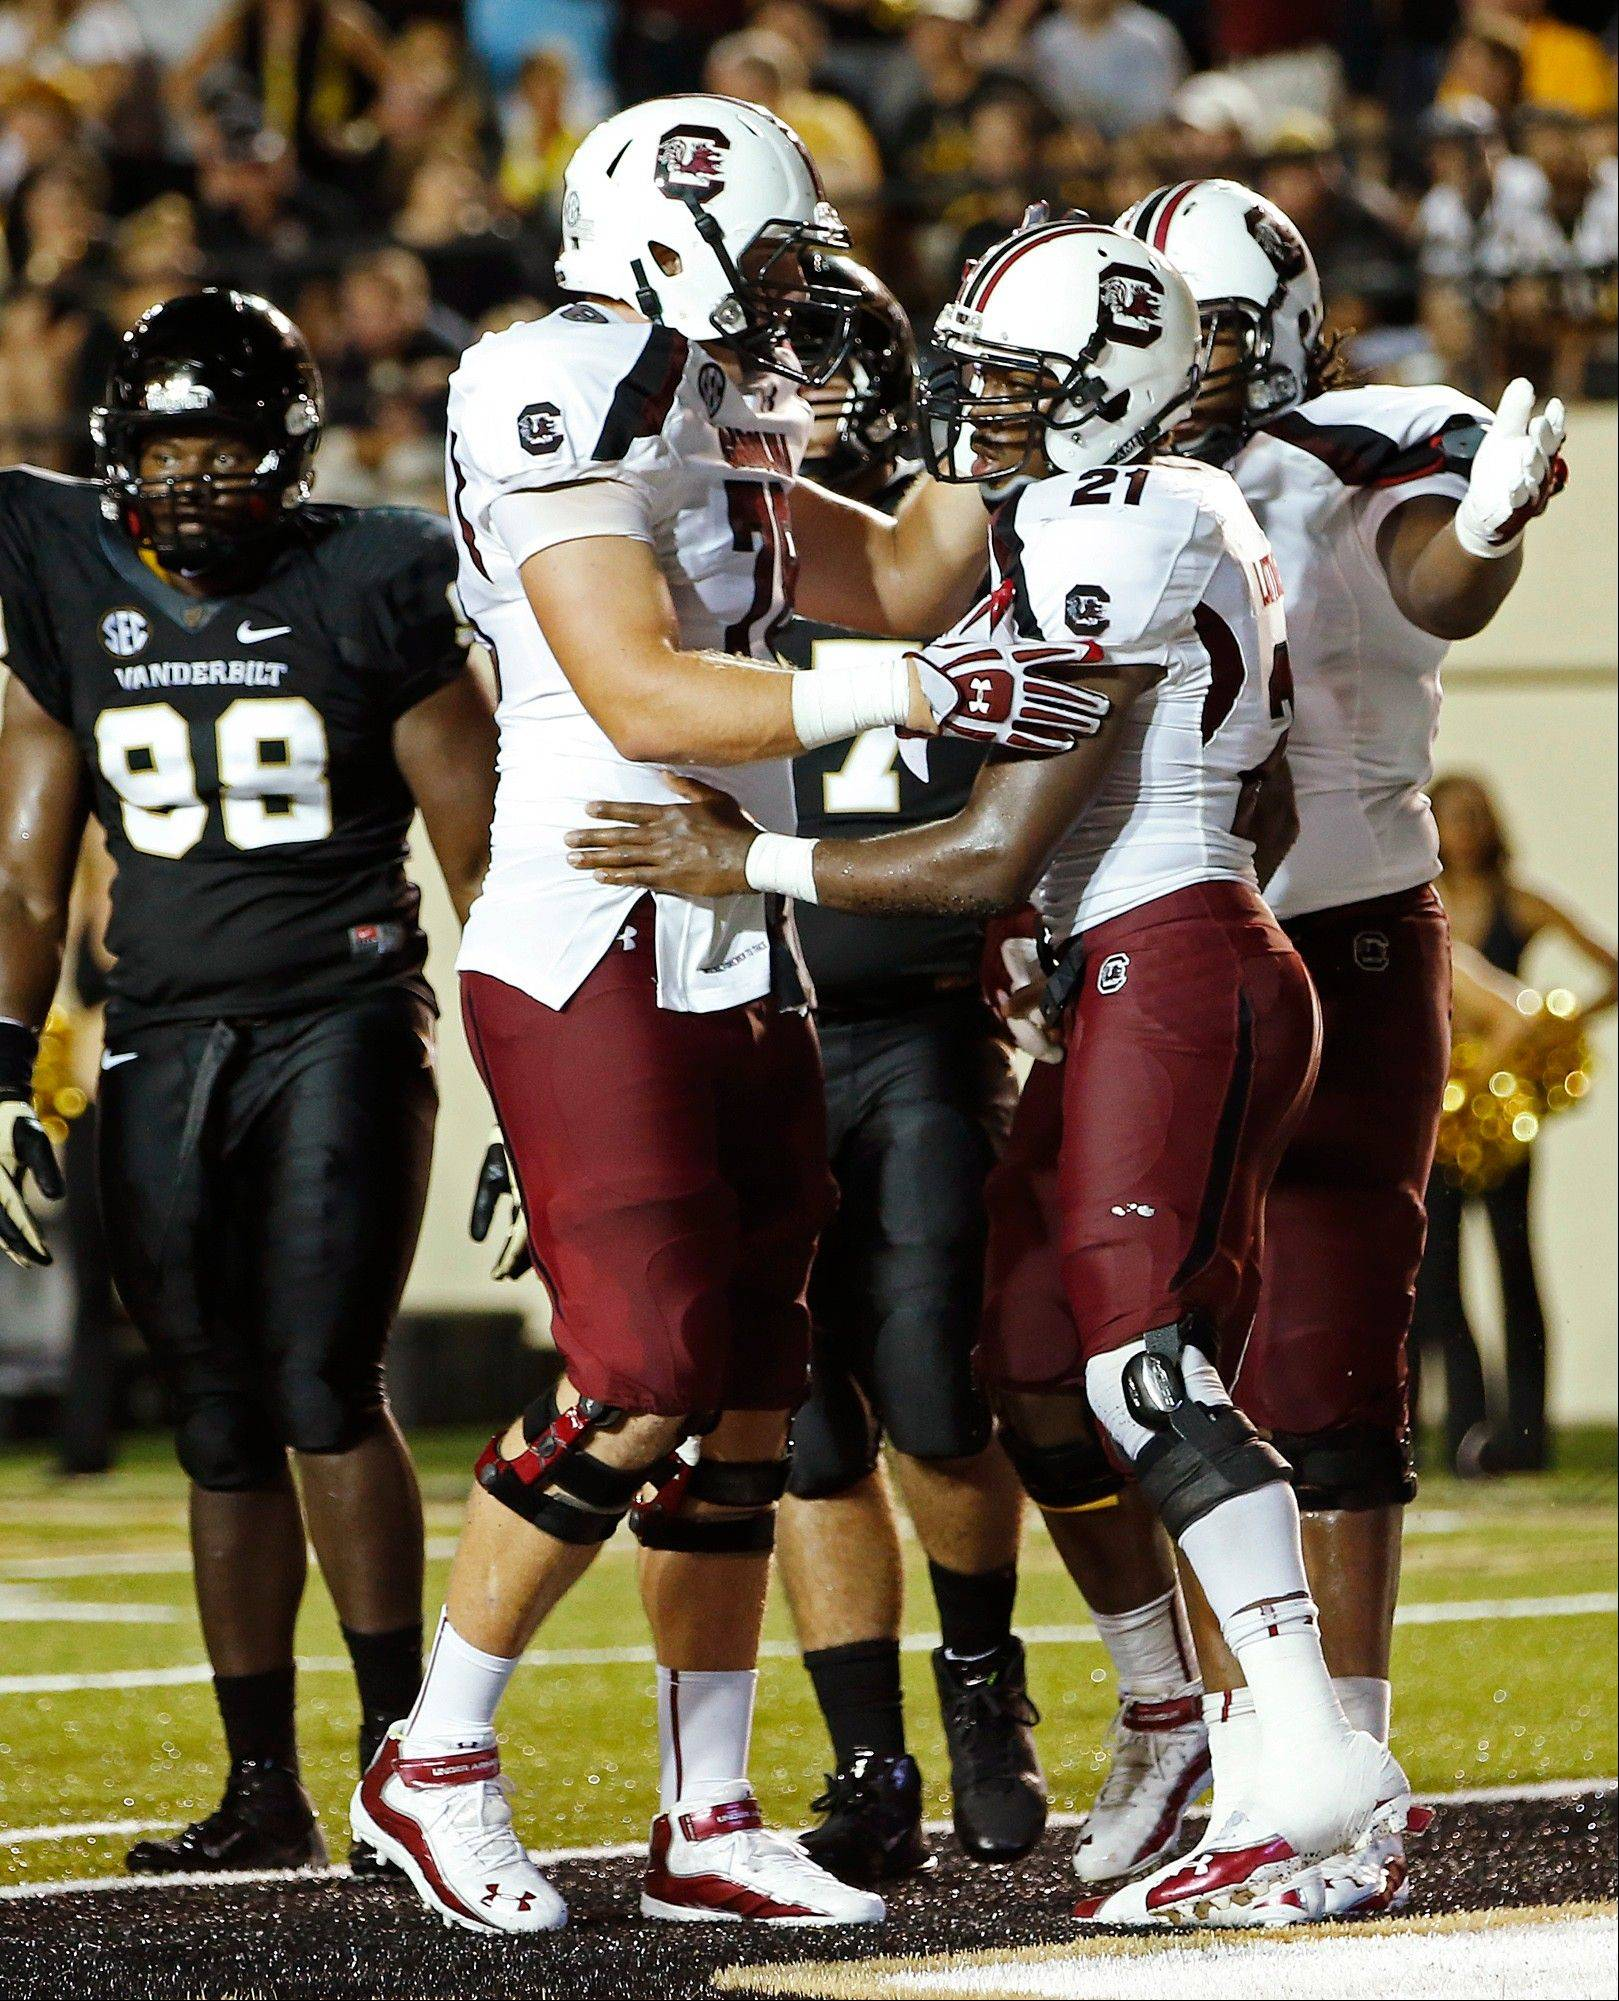 South Carolina�s Marcus Lattimore (21) celebrates his game-winning touchdown against Vanderbilt with teammates Thursday in Nashville, Tenn.